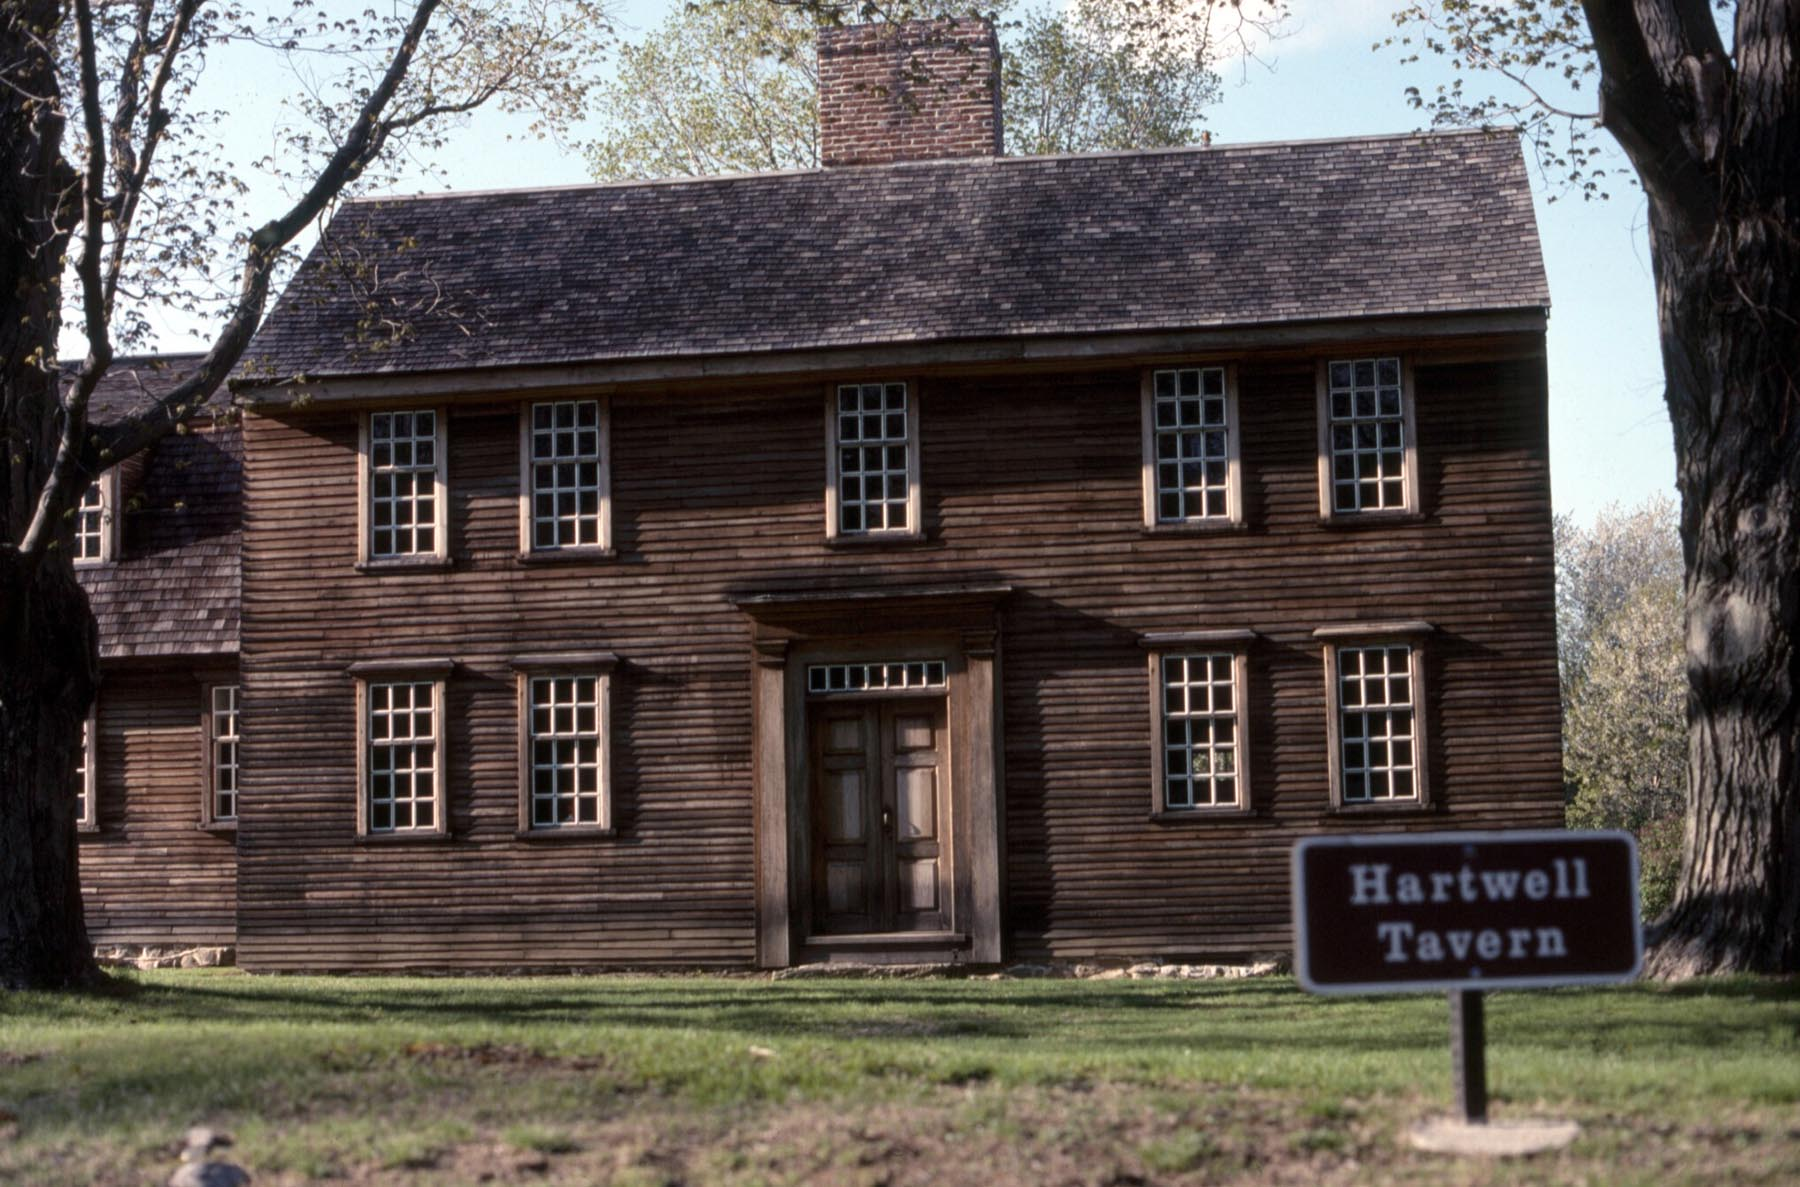 Early American Colonial - Antique Homes